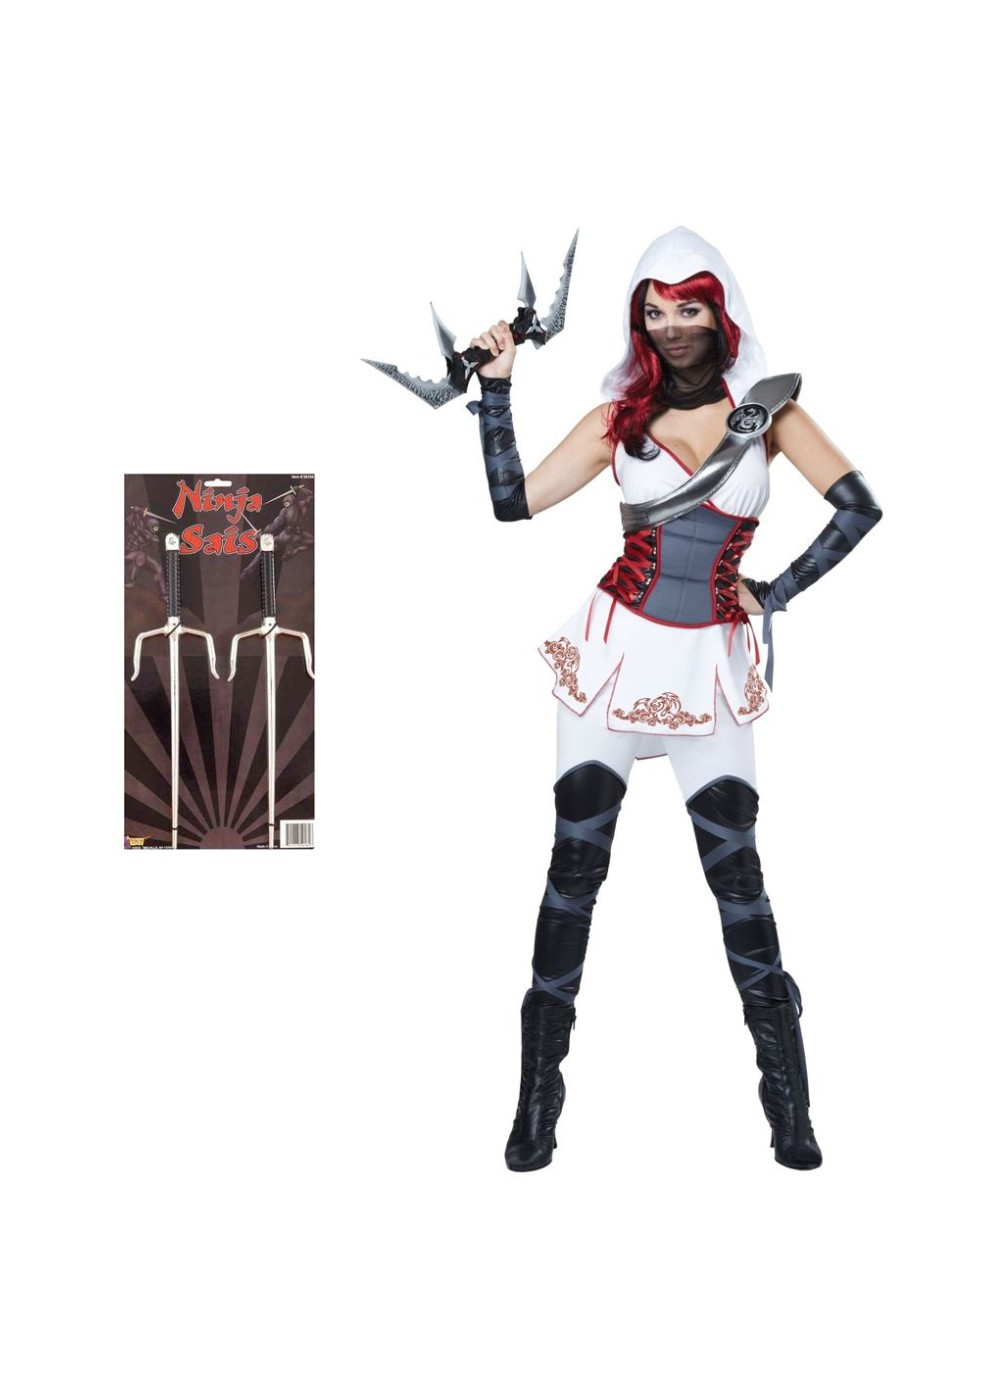 Ninja Women Costume And Metallic Sais Set